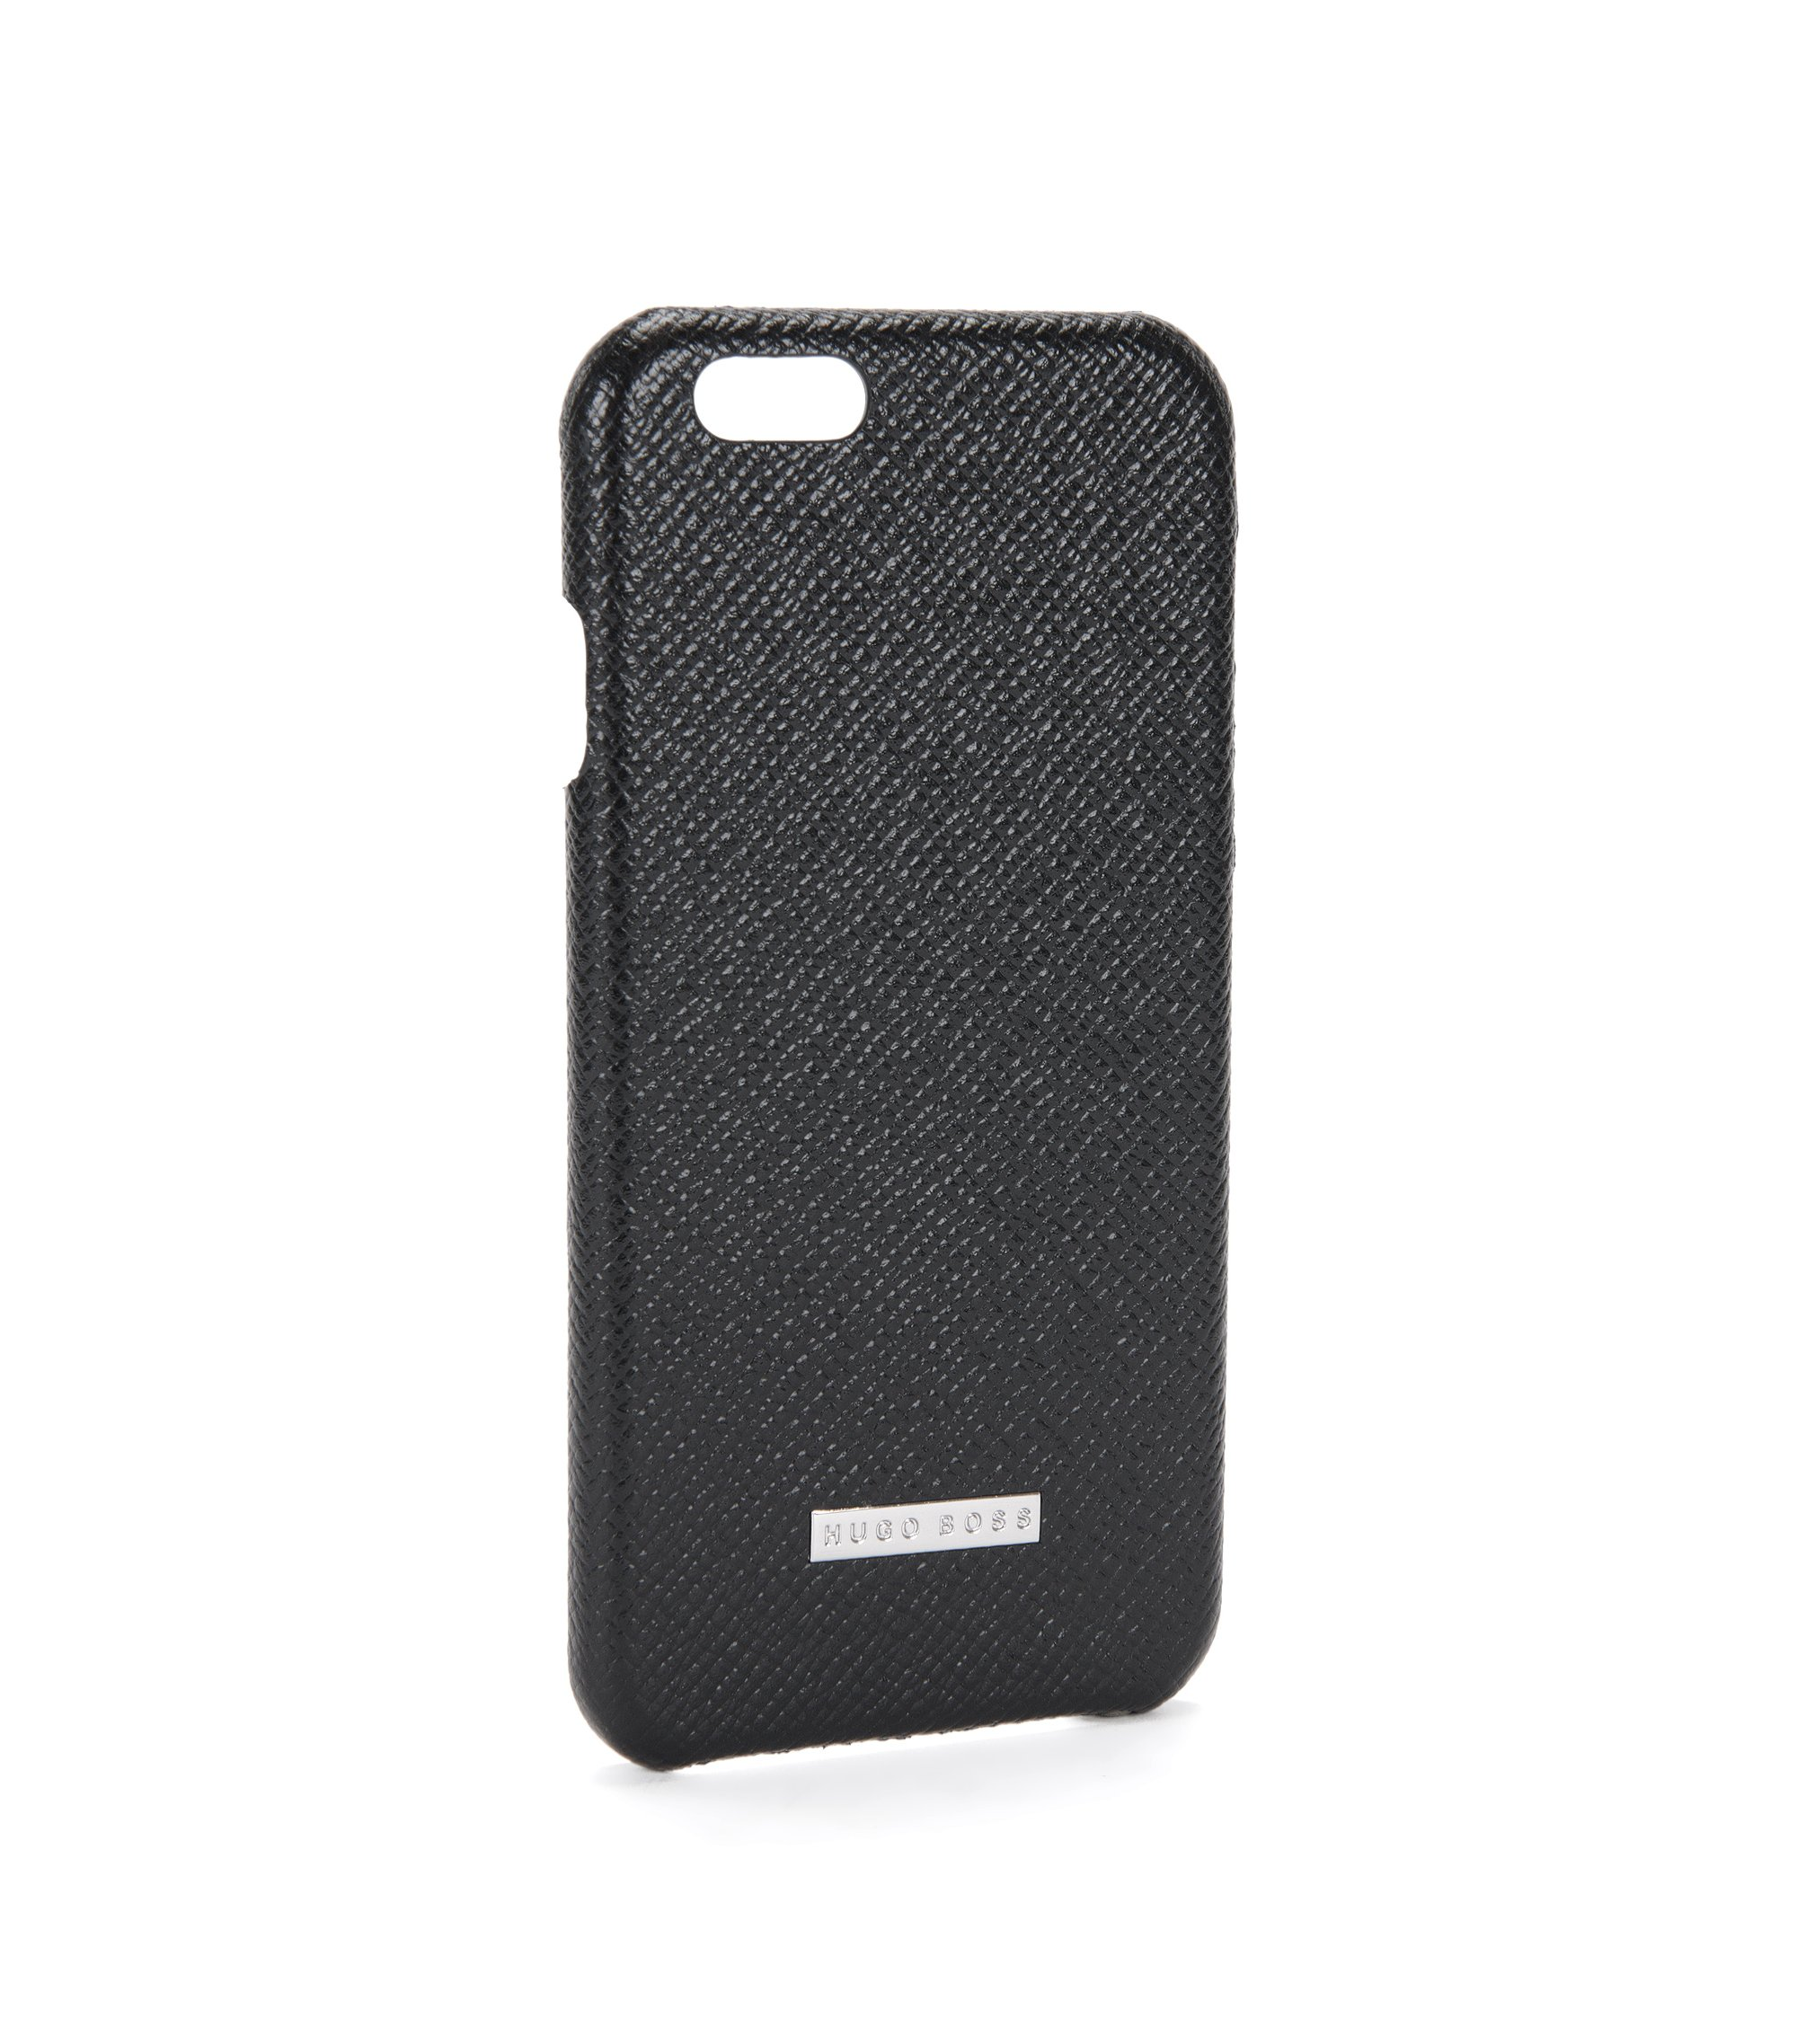 Signature Collection smartphone cover in palmellato leather, Black